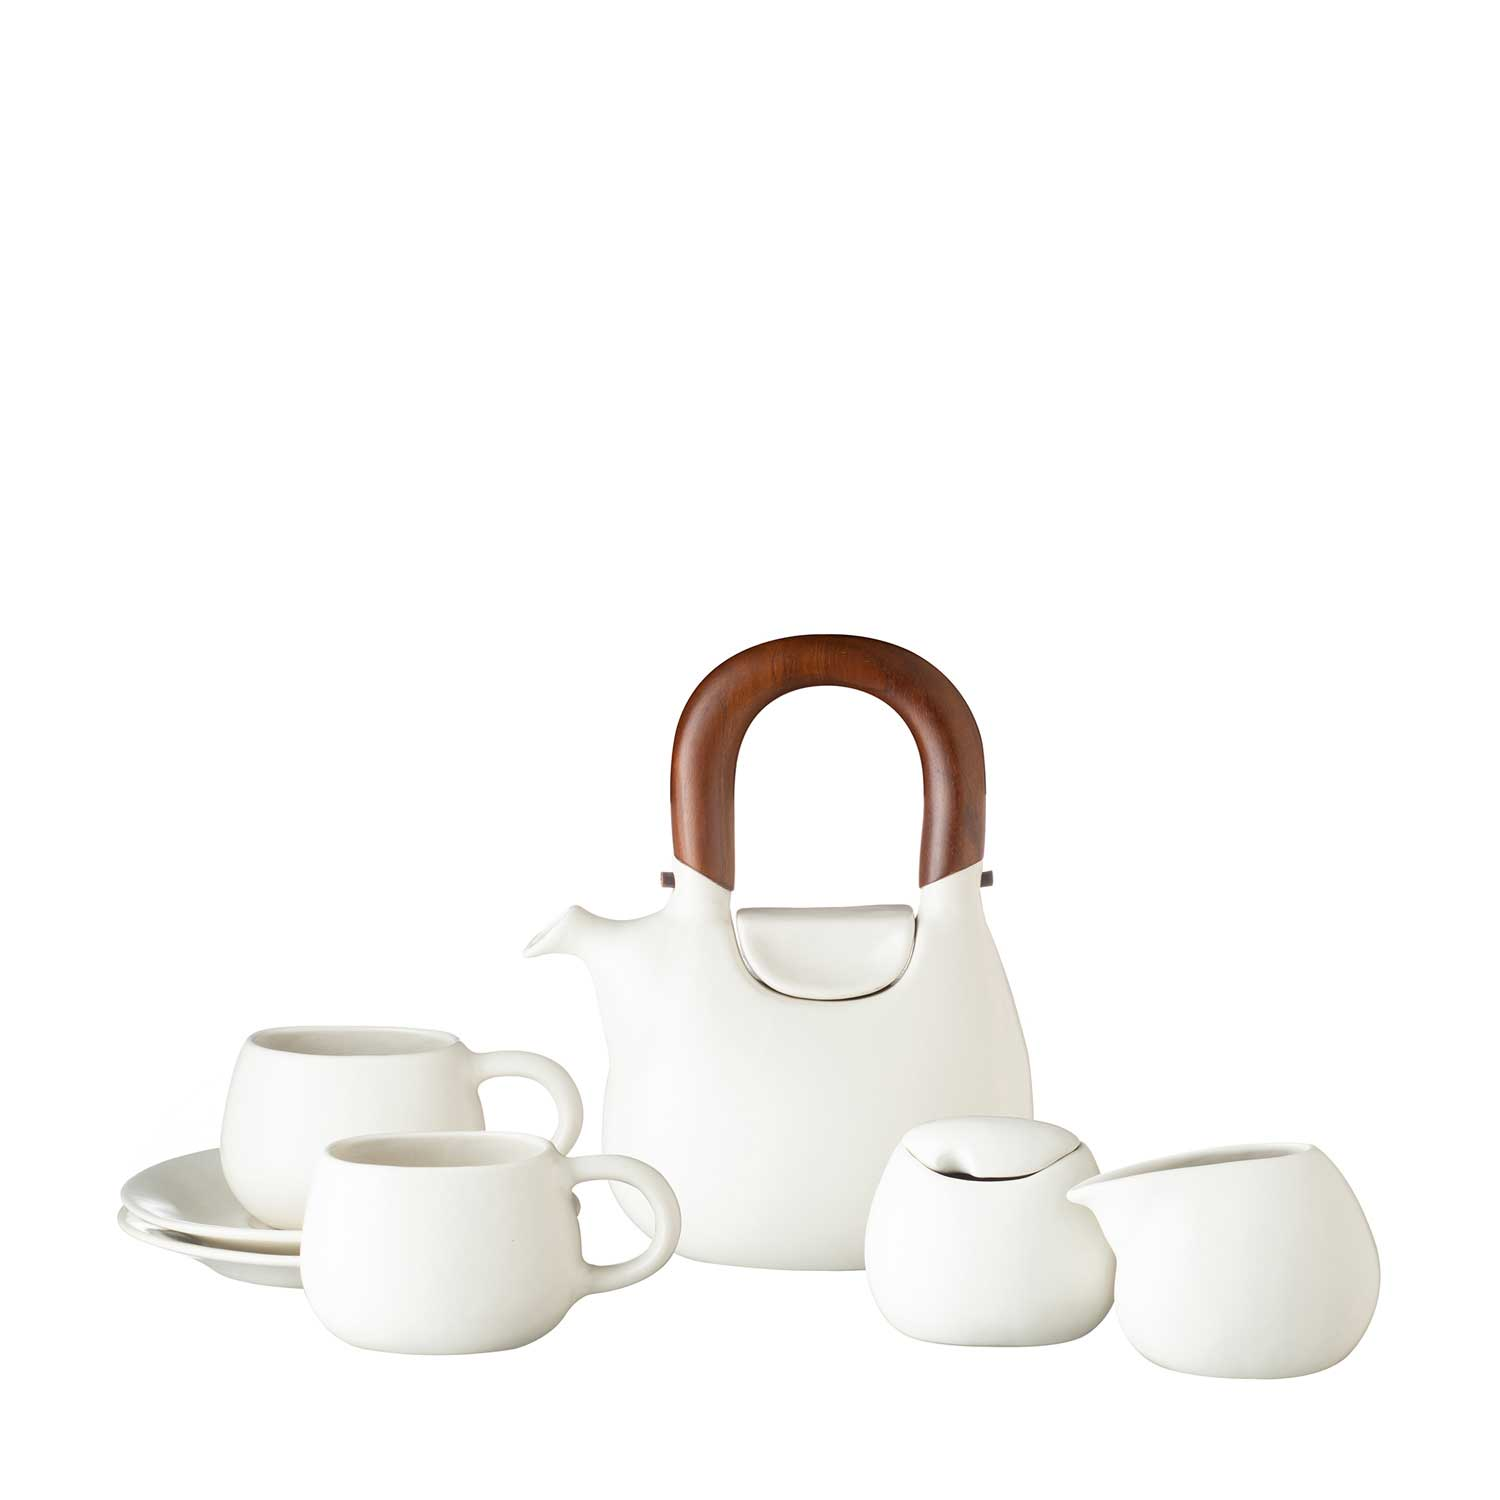 handbag tea set